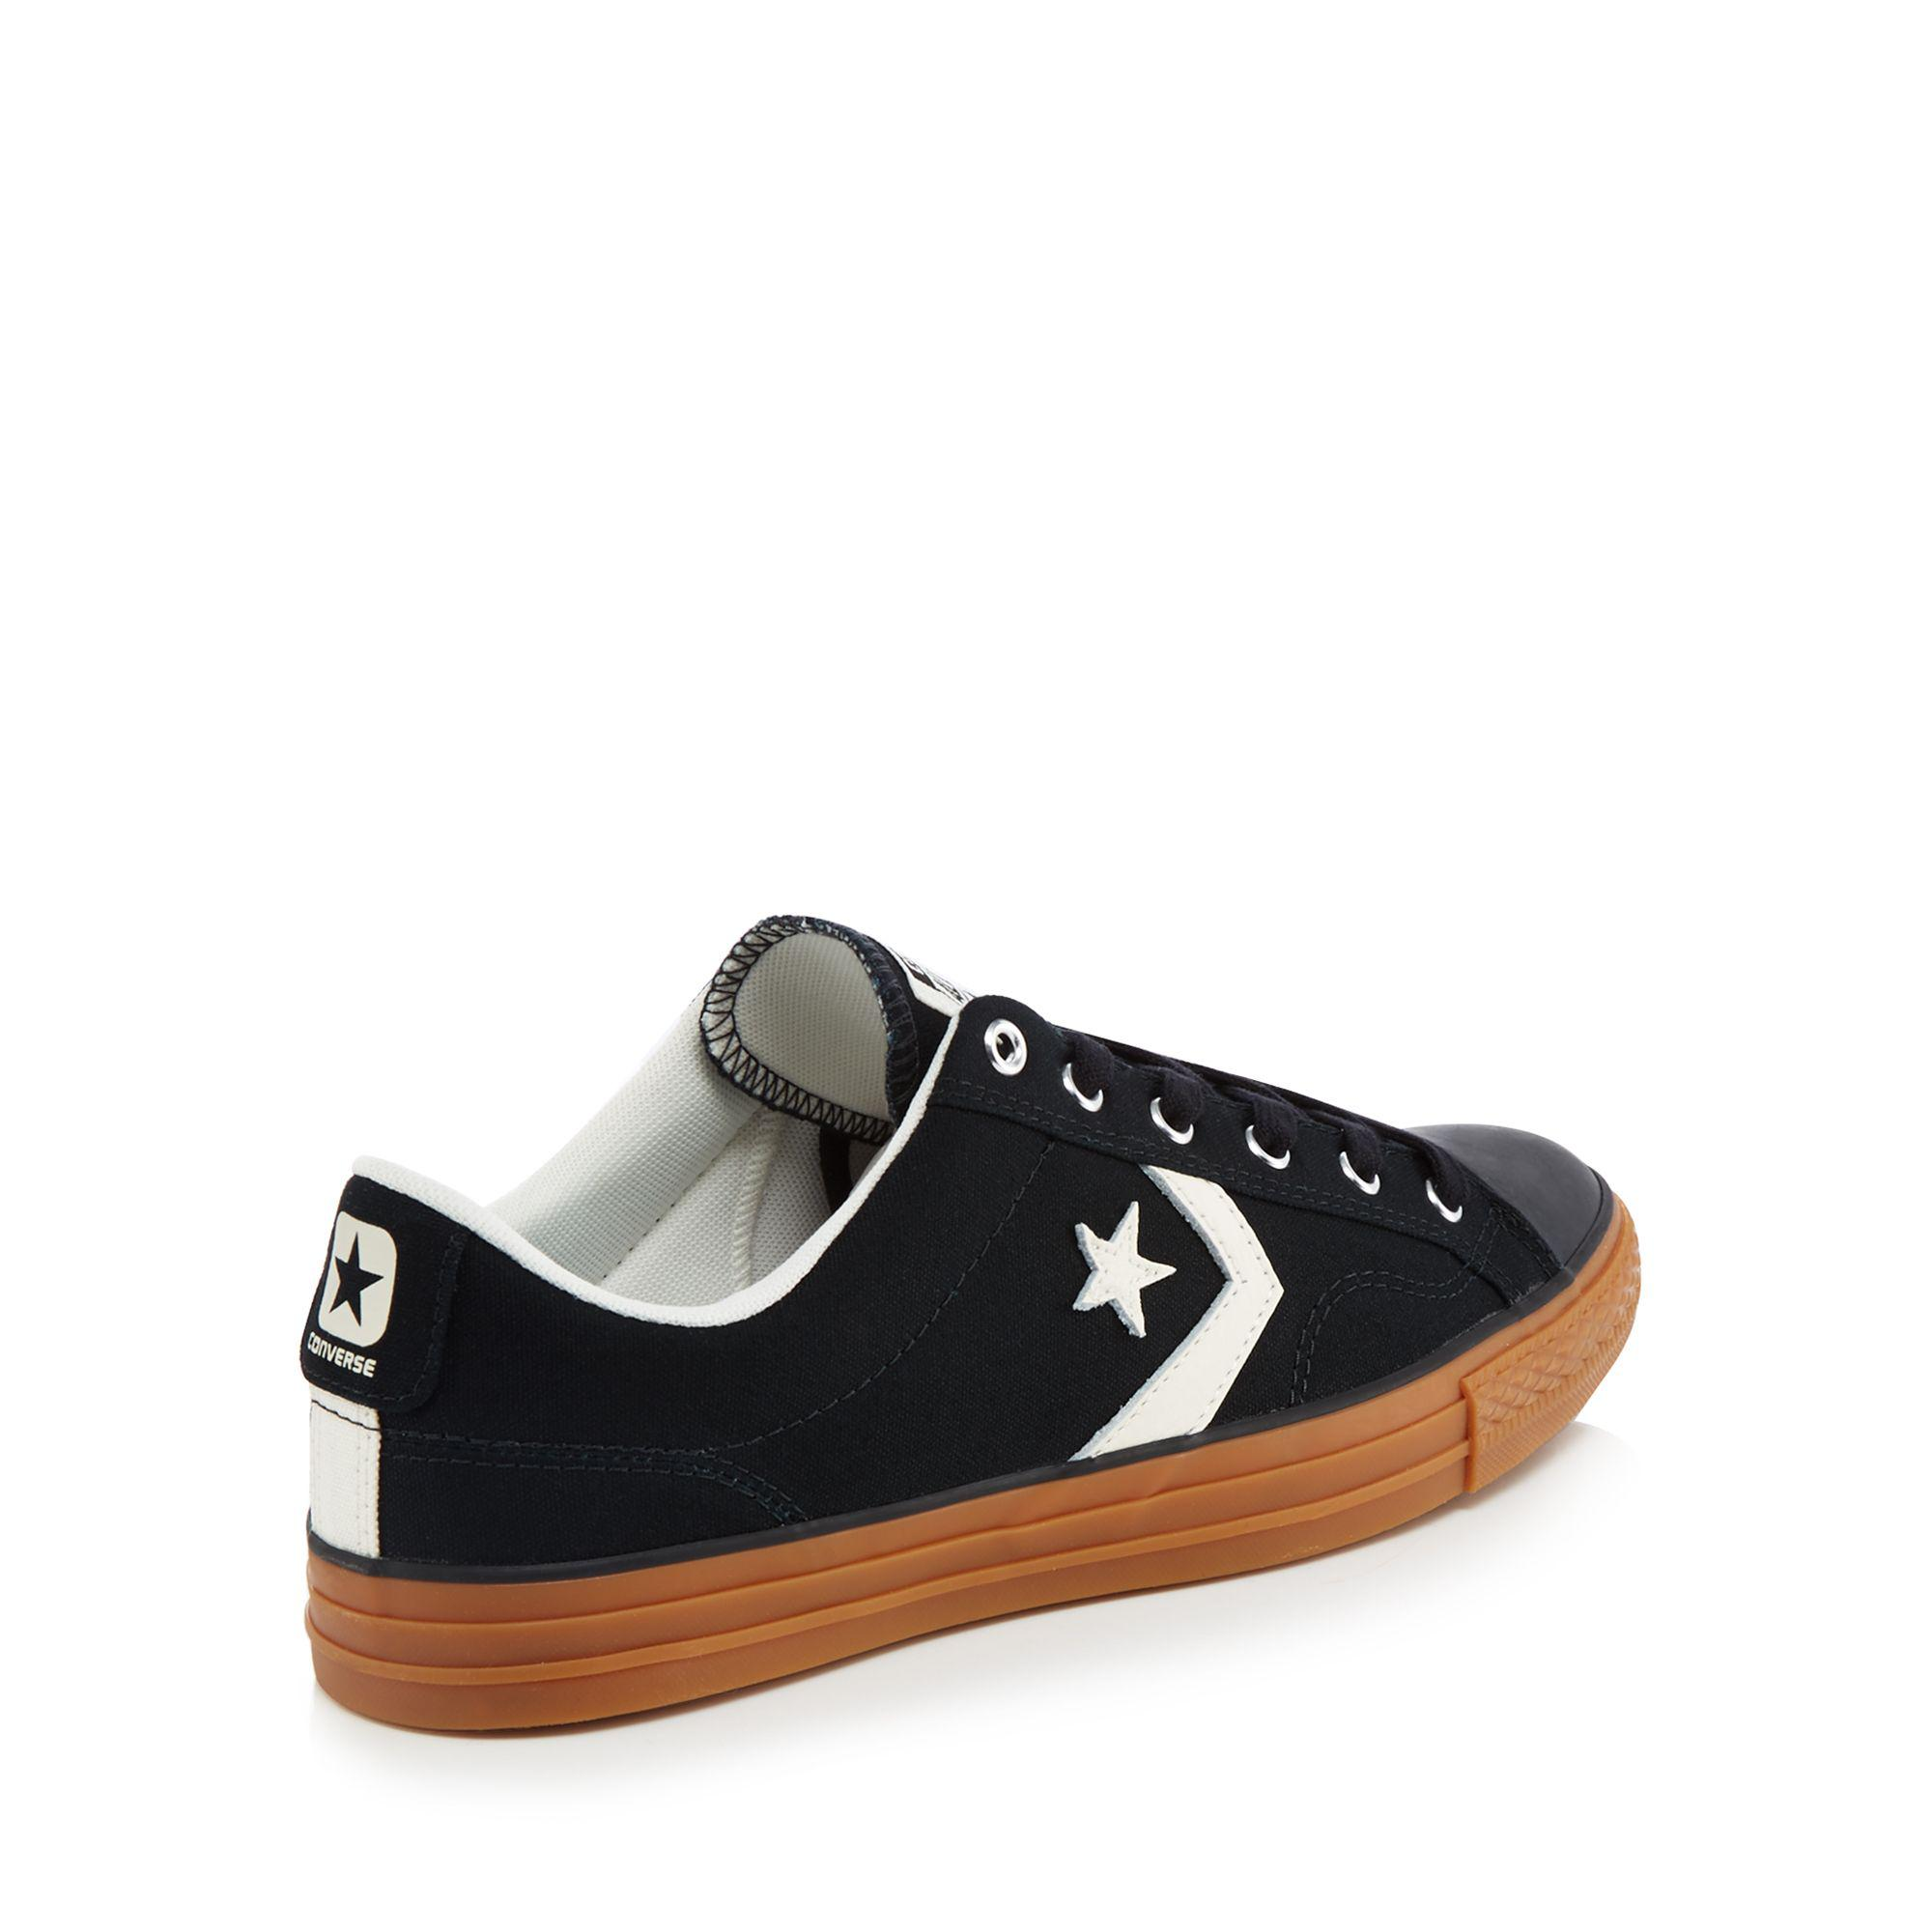 ef4258f576510a Converse - Black Canvas  star Player  Lace Up Trainers for Men - Lyst. View  fullscreen